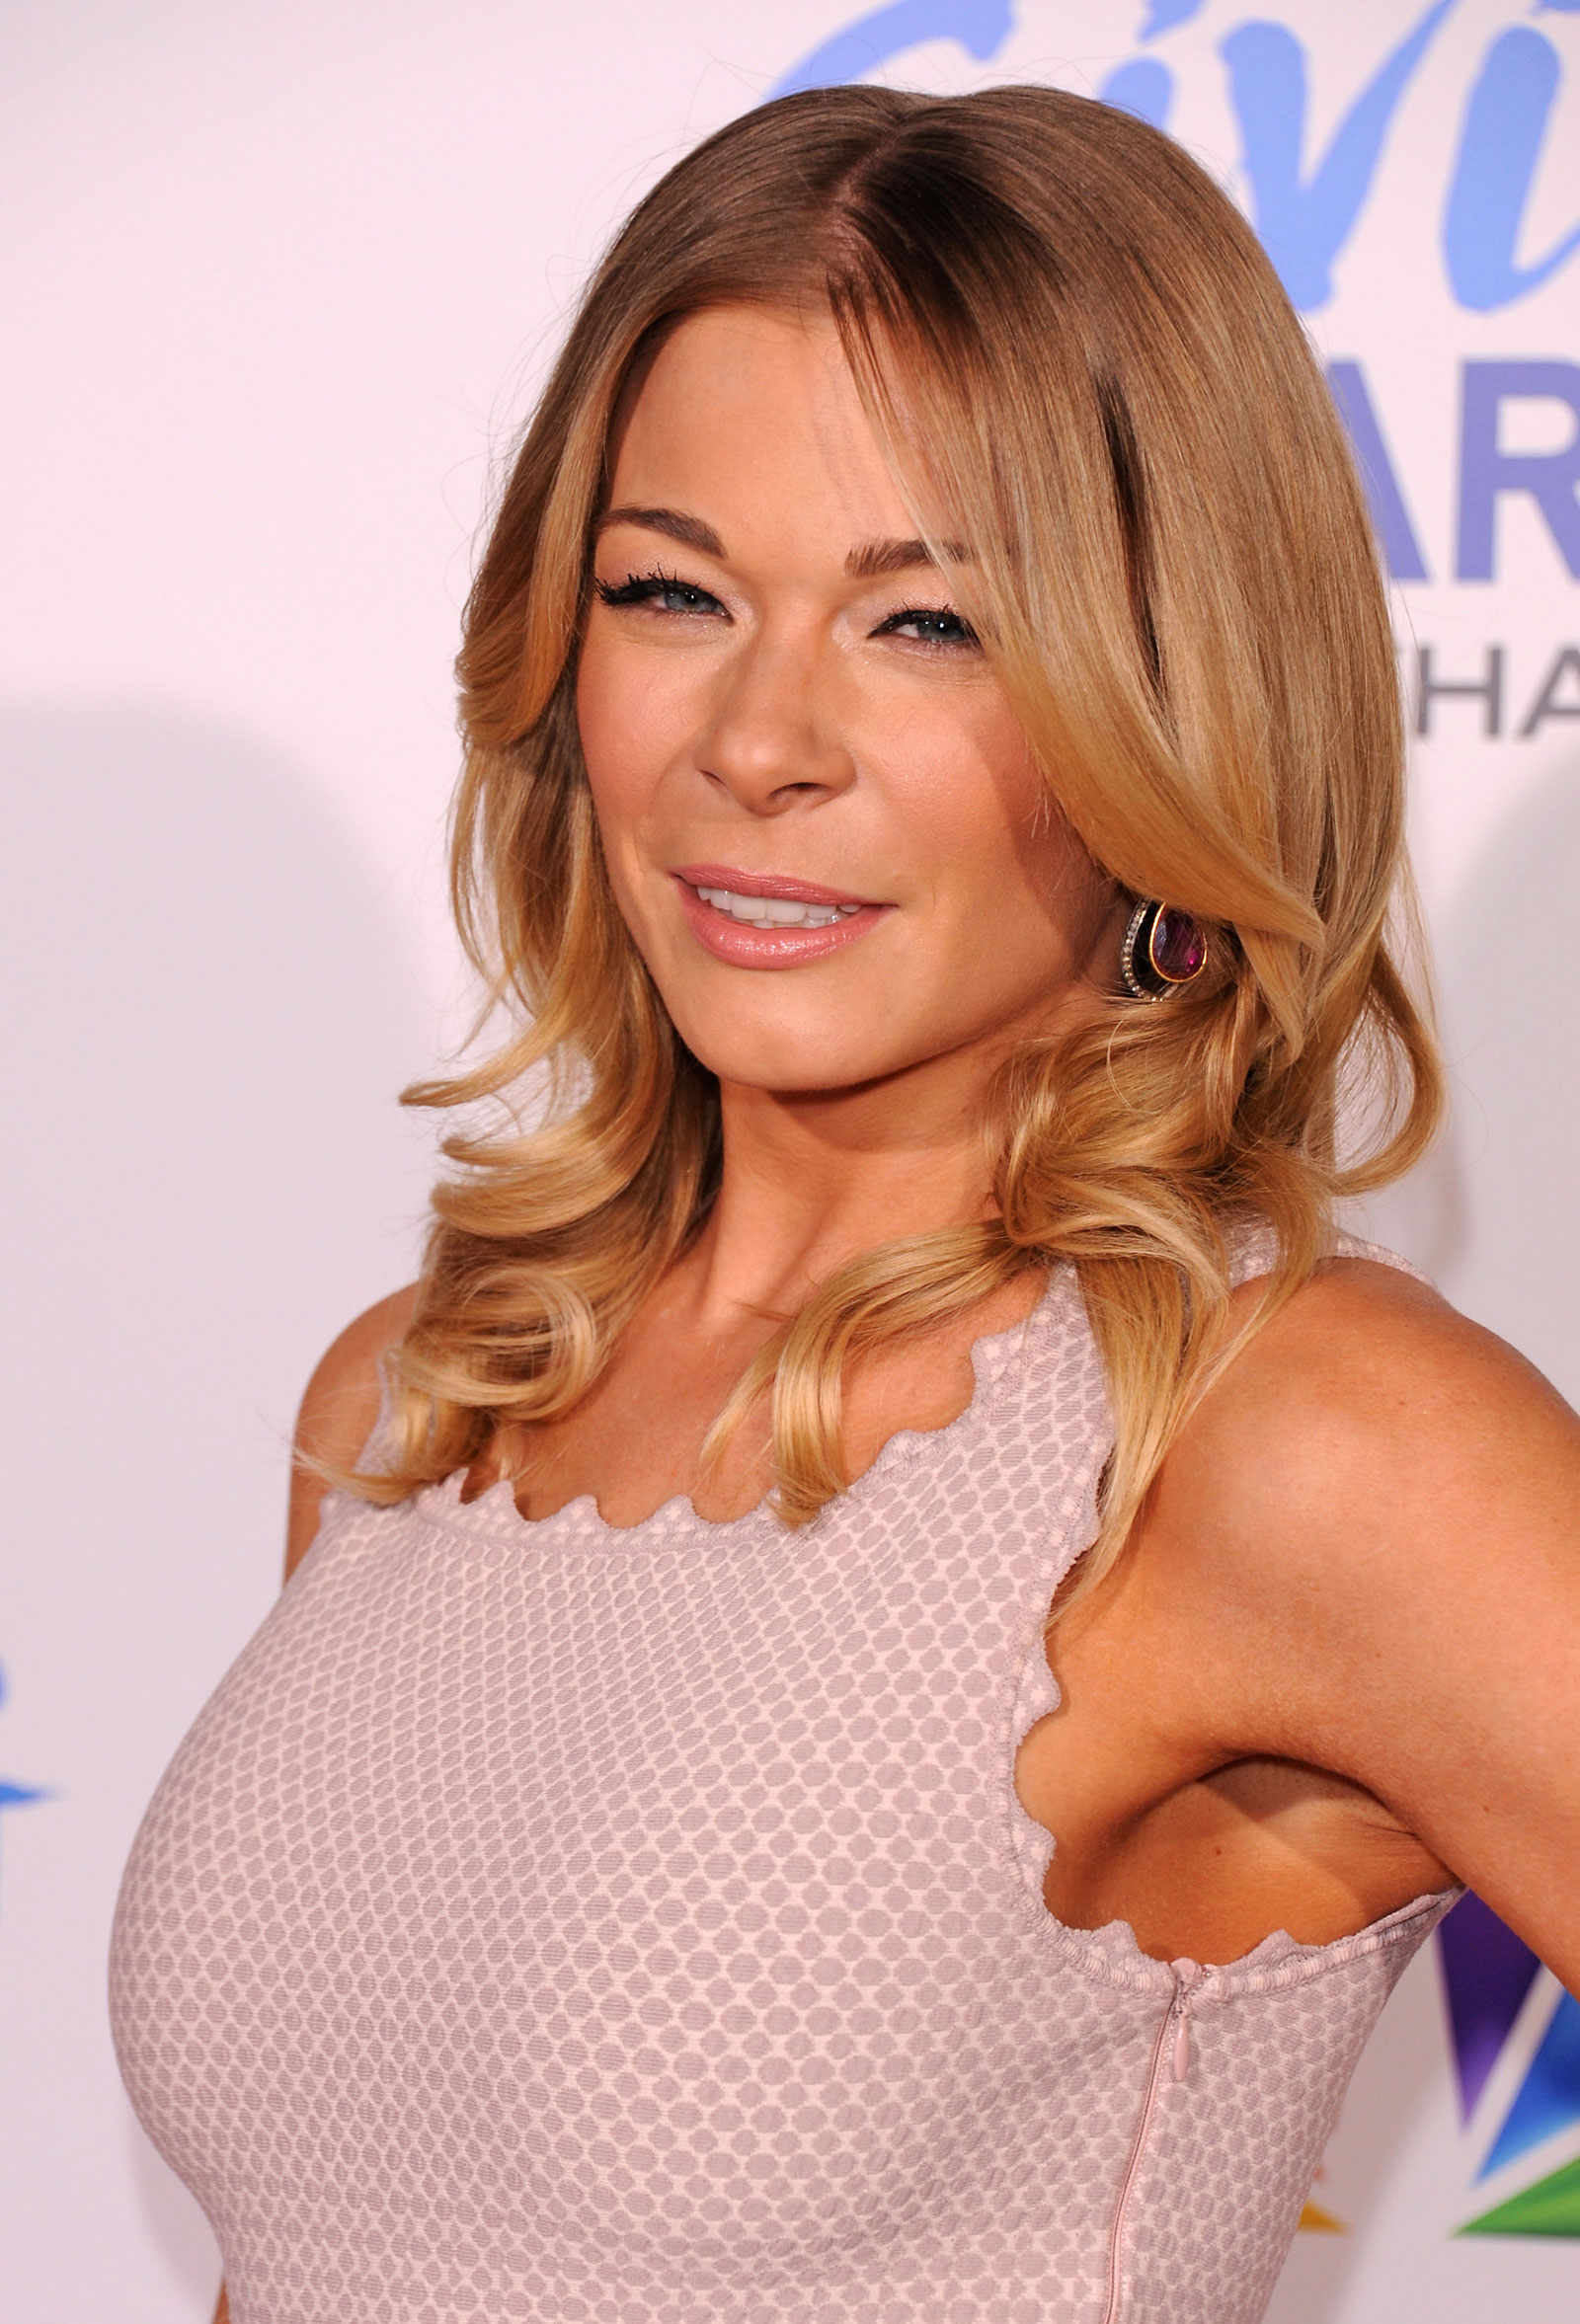 LeAnn Rimes - Images Gallery